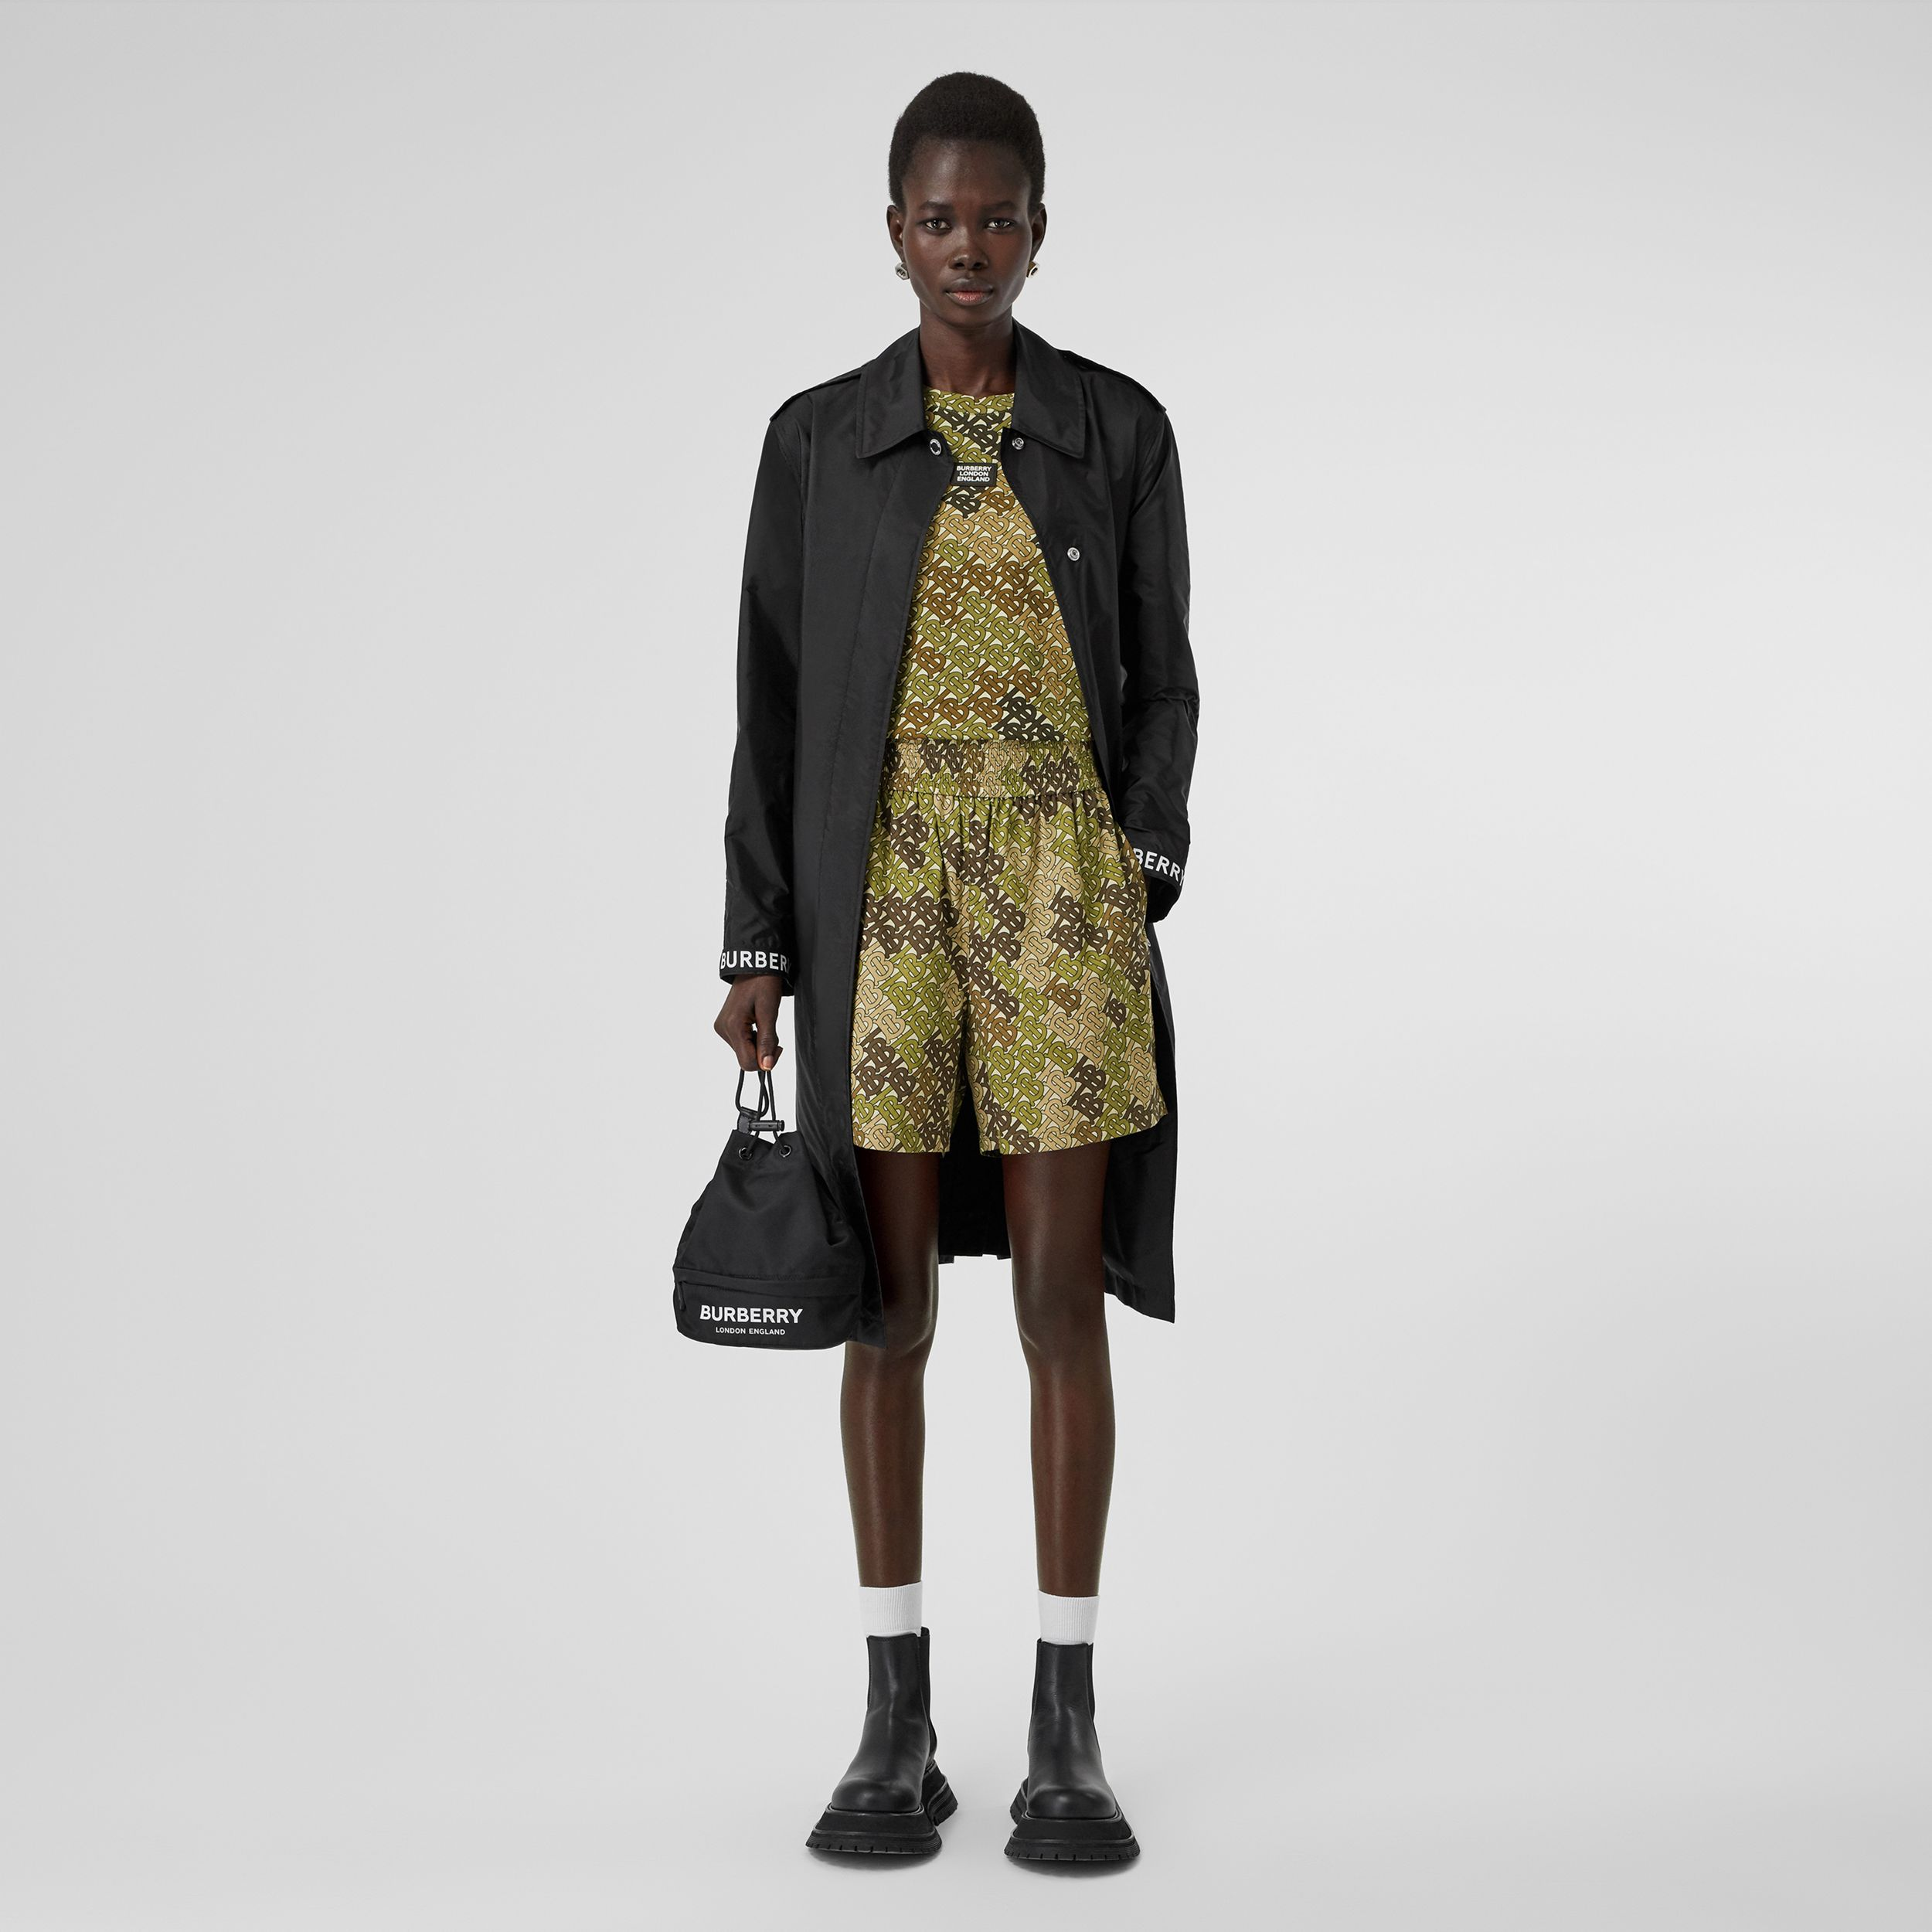 Monogram Print Cotton Poplin Shorts in Khaki Green | Burberry - 1